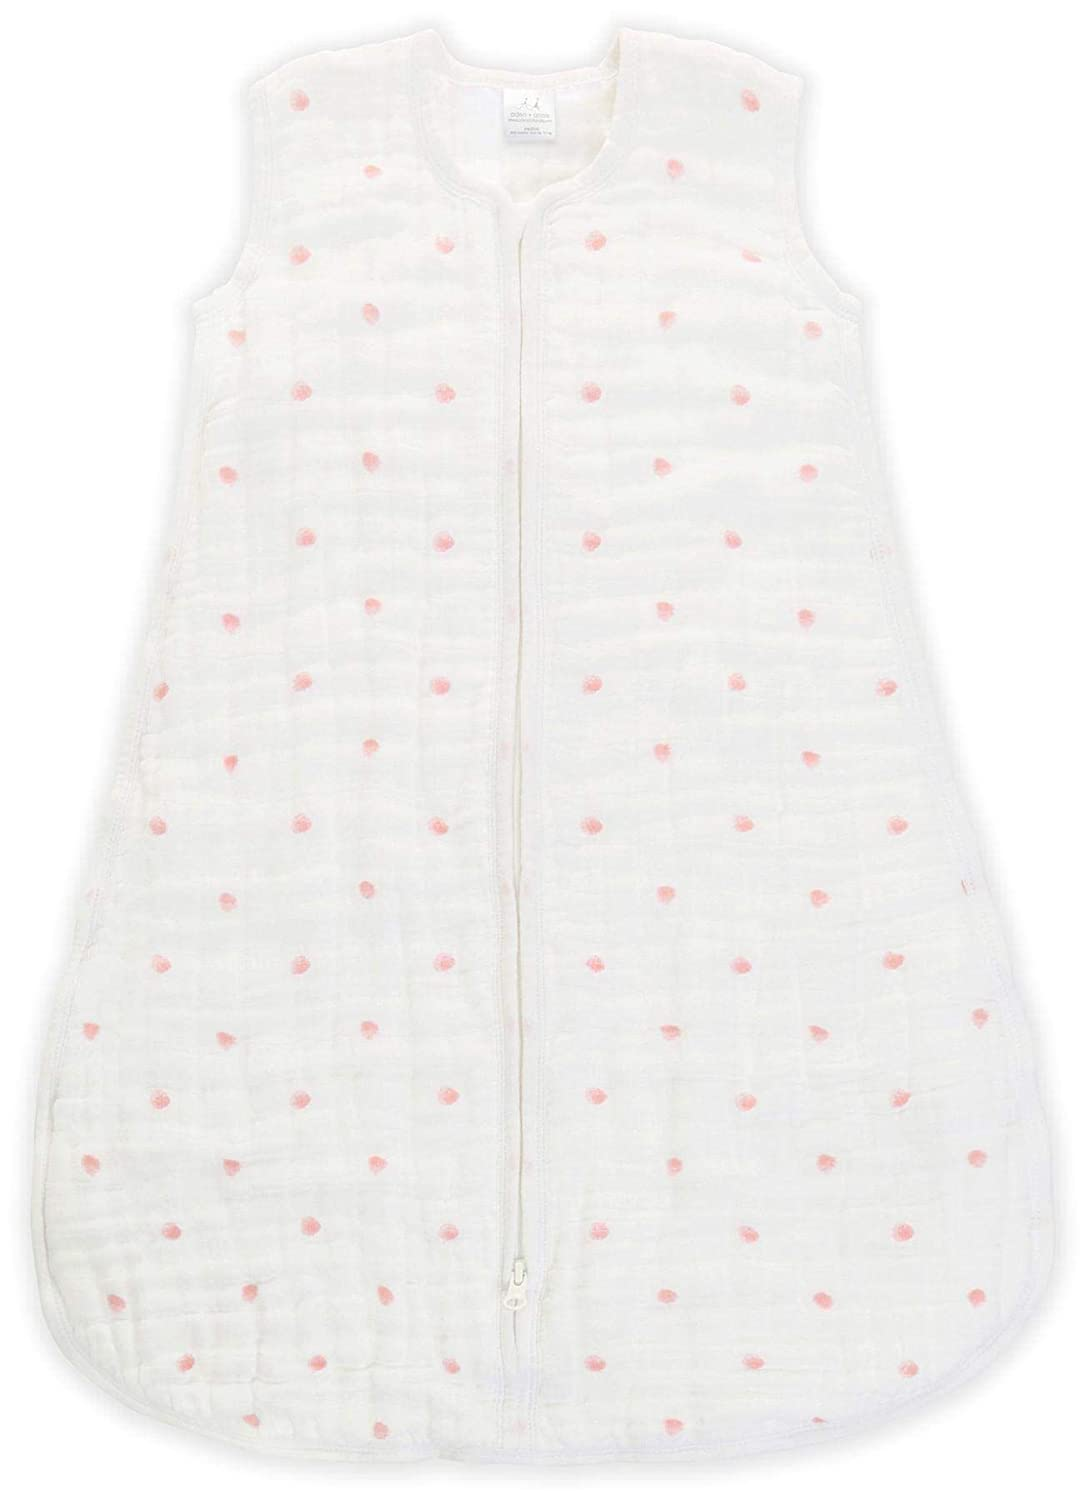 Amazon.com: aden + anais Multi-Layer Sleeping Bag - Lovebird - Rose Water Dot - 18-36m: Baby